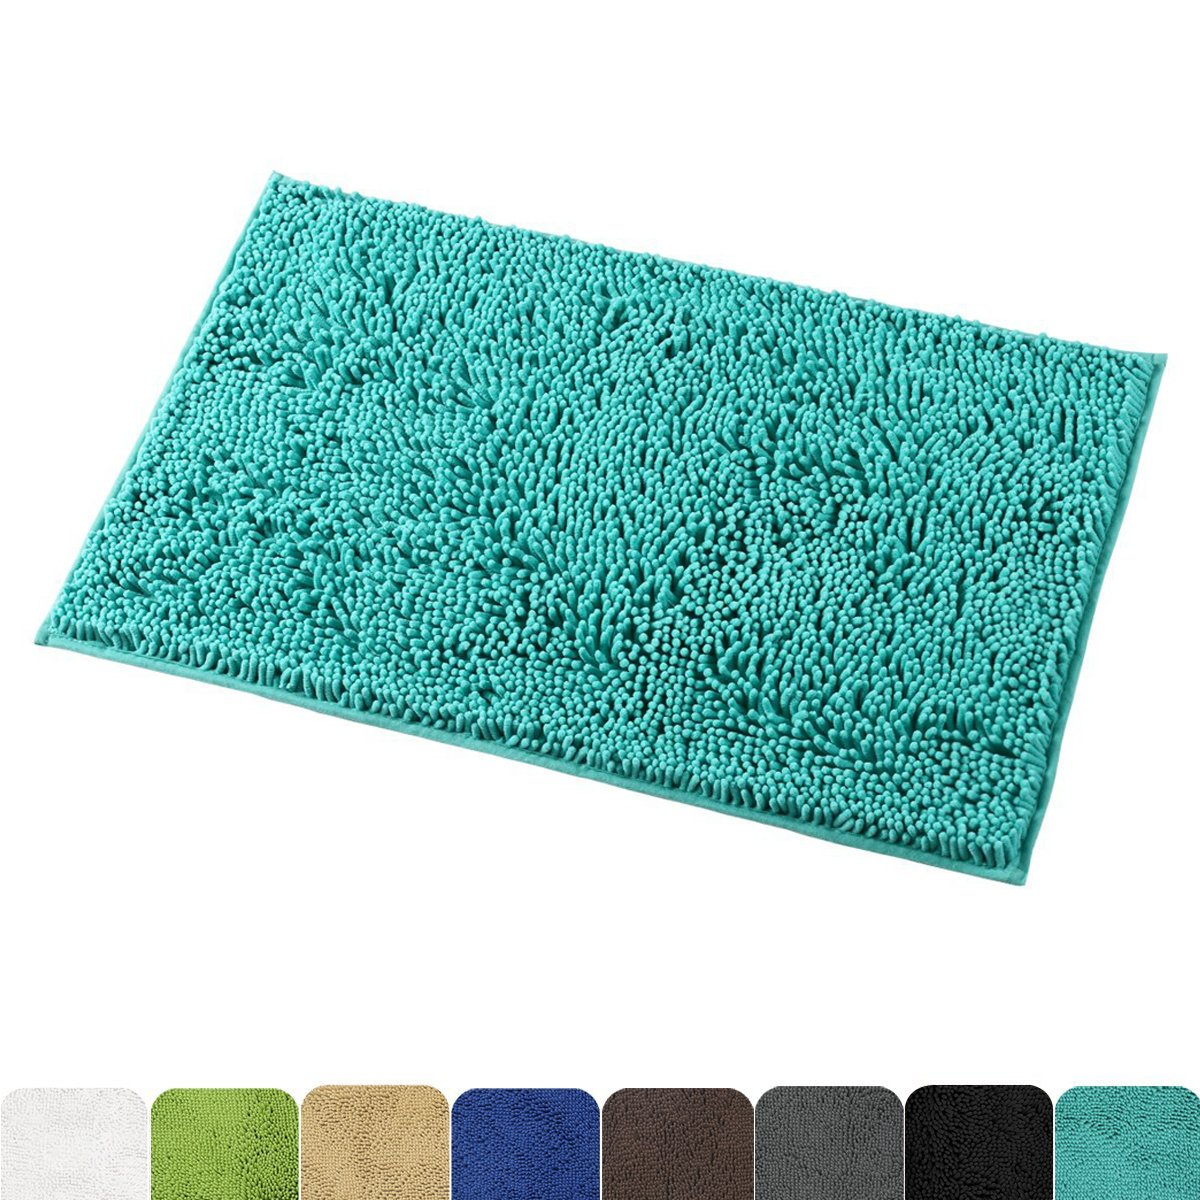 Mayshine Non-Slip Bathroom Rug Shag Shower Mat Machine-Washable Bath Mats with Water Absorbent Soft Microfibers, 20'' W x 32'' L, Turquoise